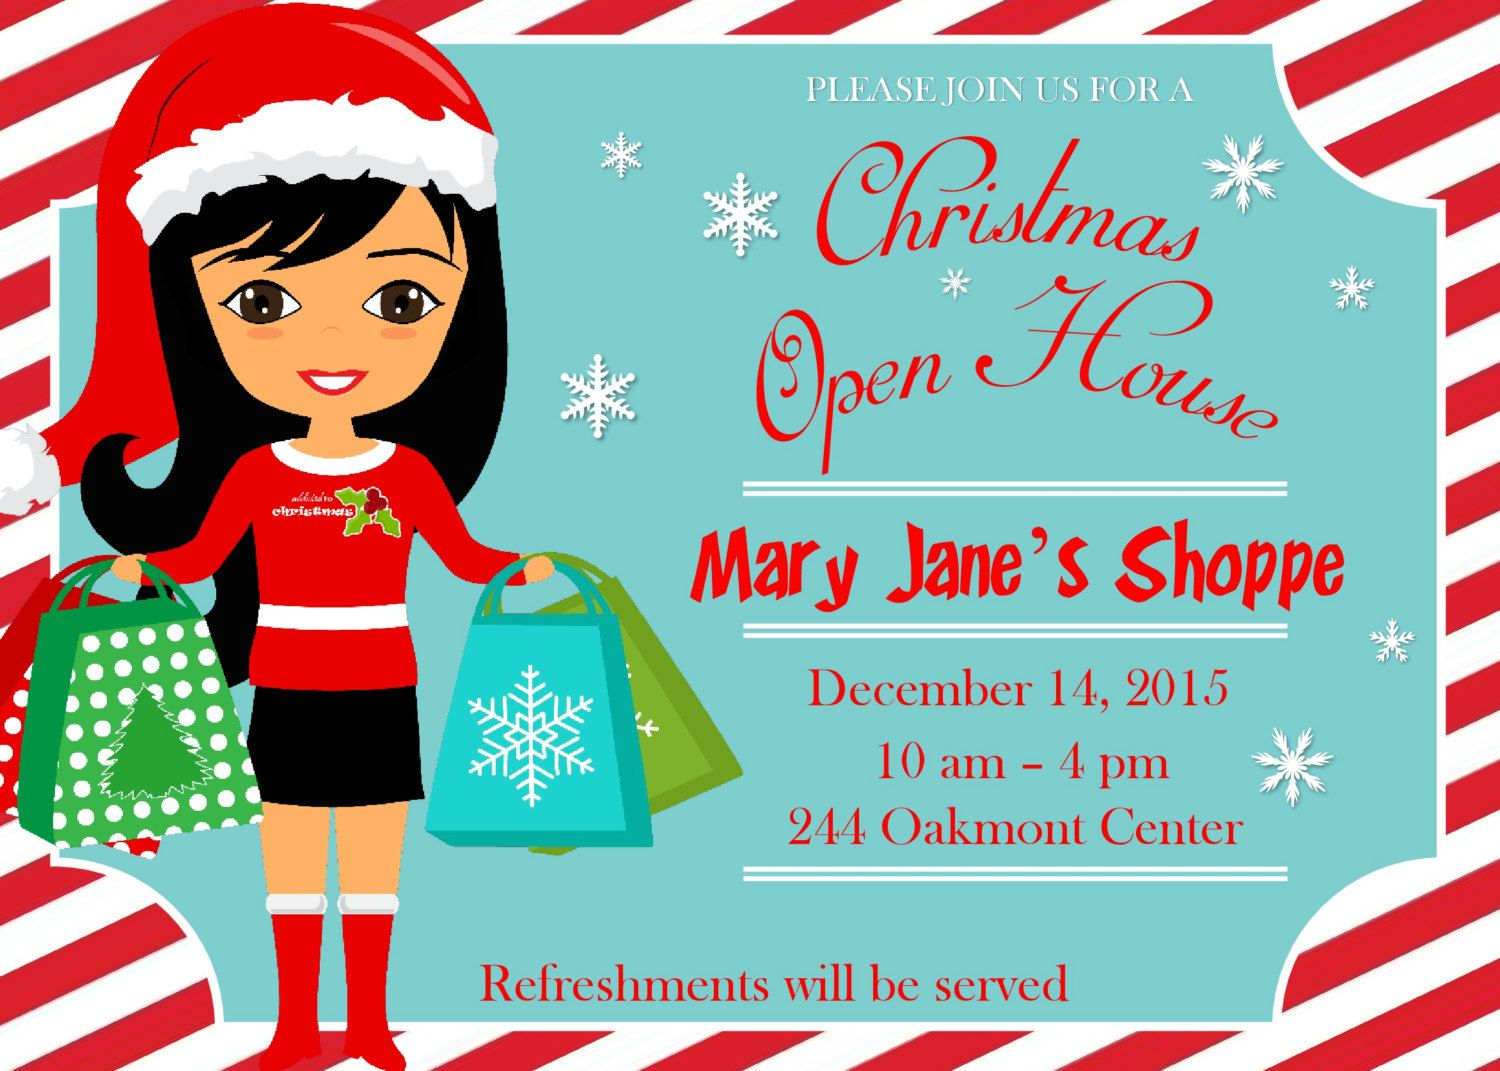 best invite images. Business clipart open house